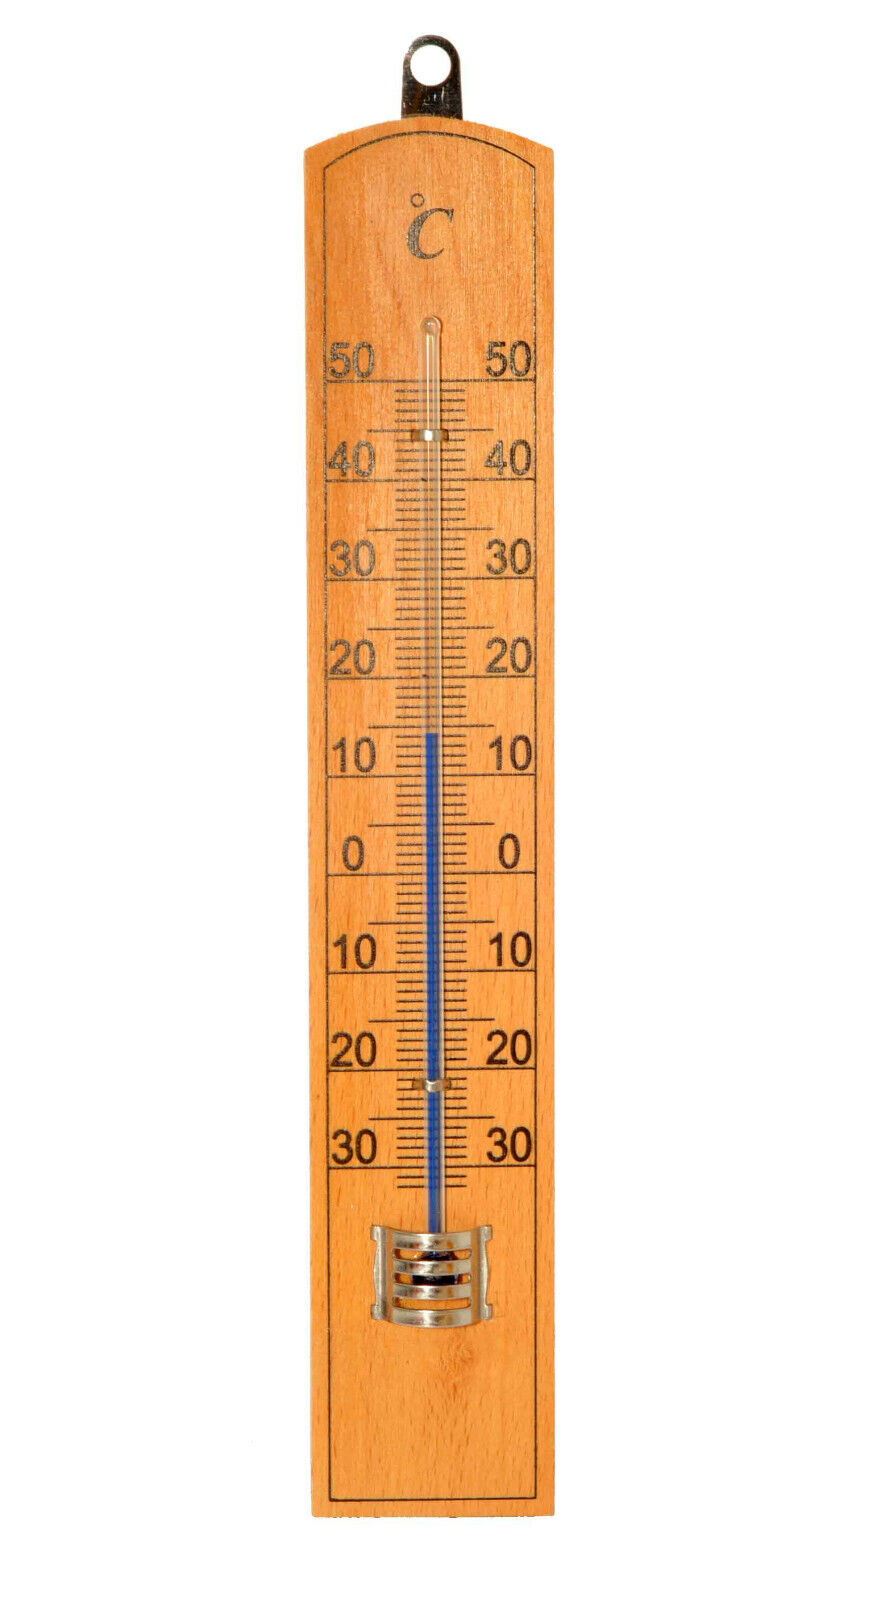 Wooden Centigrade Thermometer Home or Garden -30° - +50°c Celsius Wall Mounted